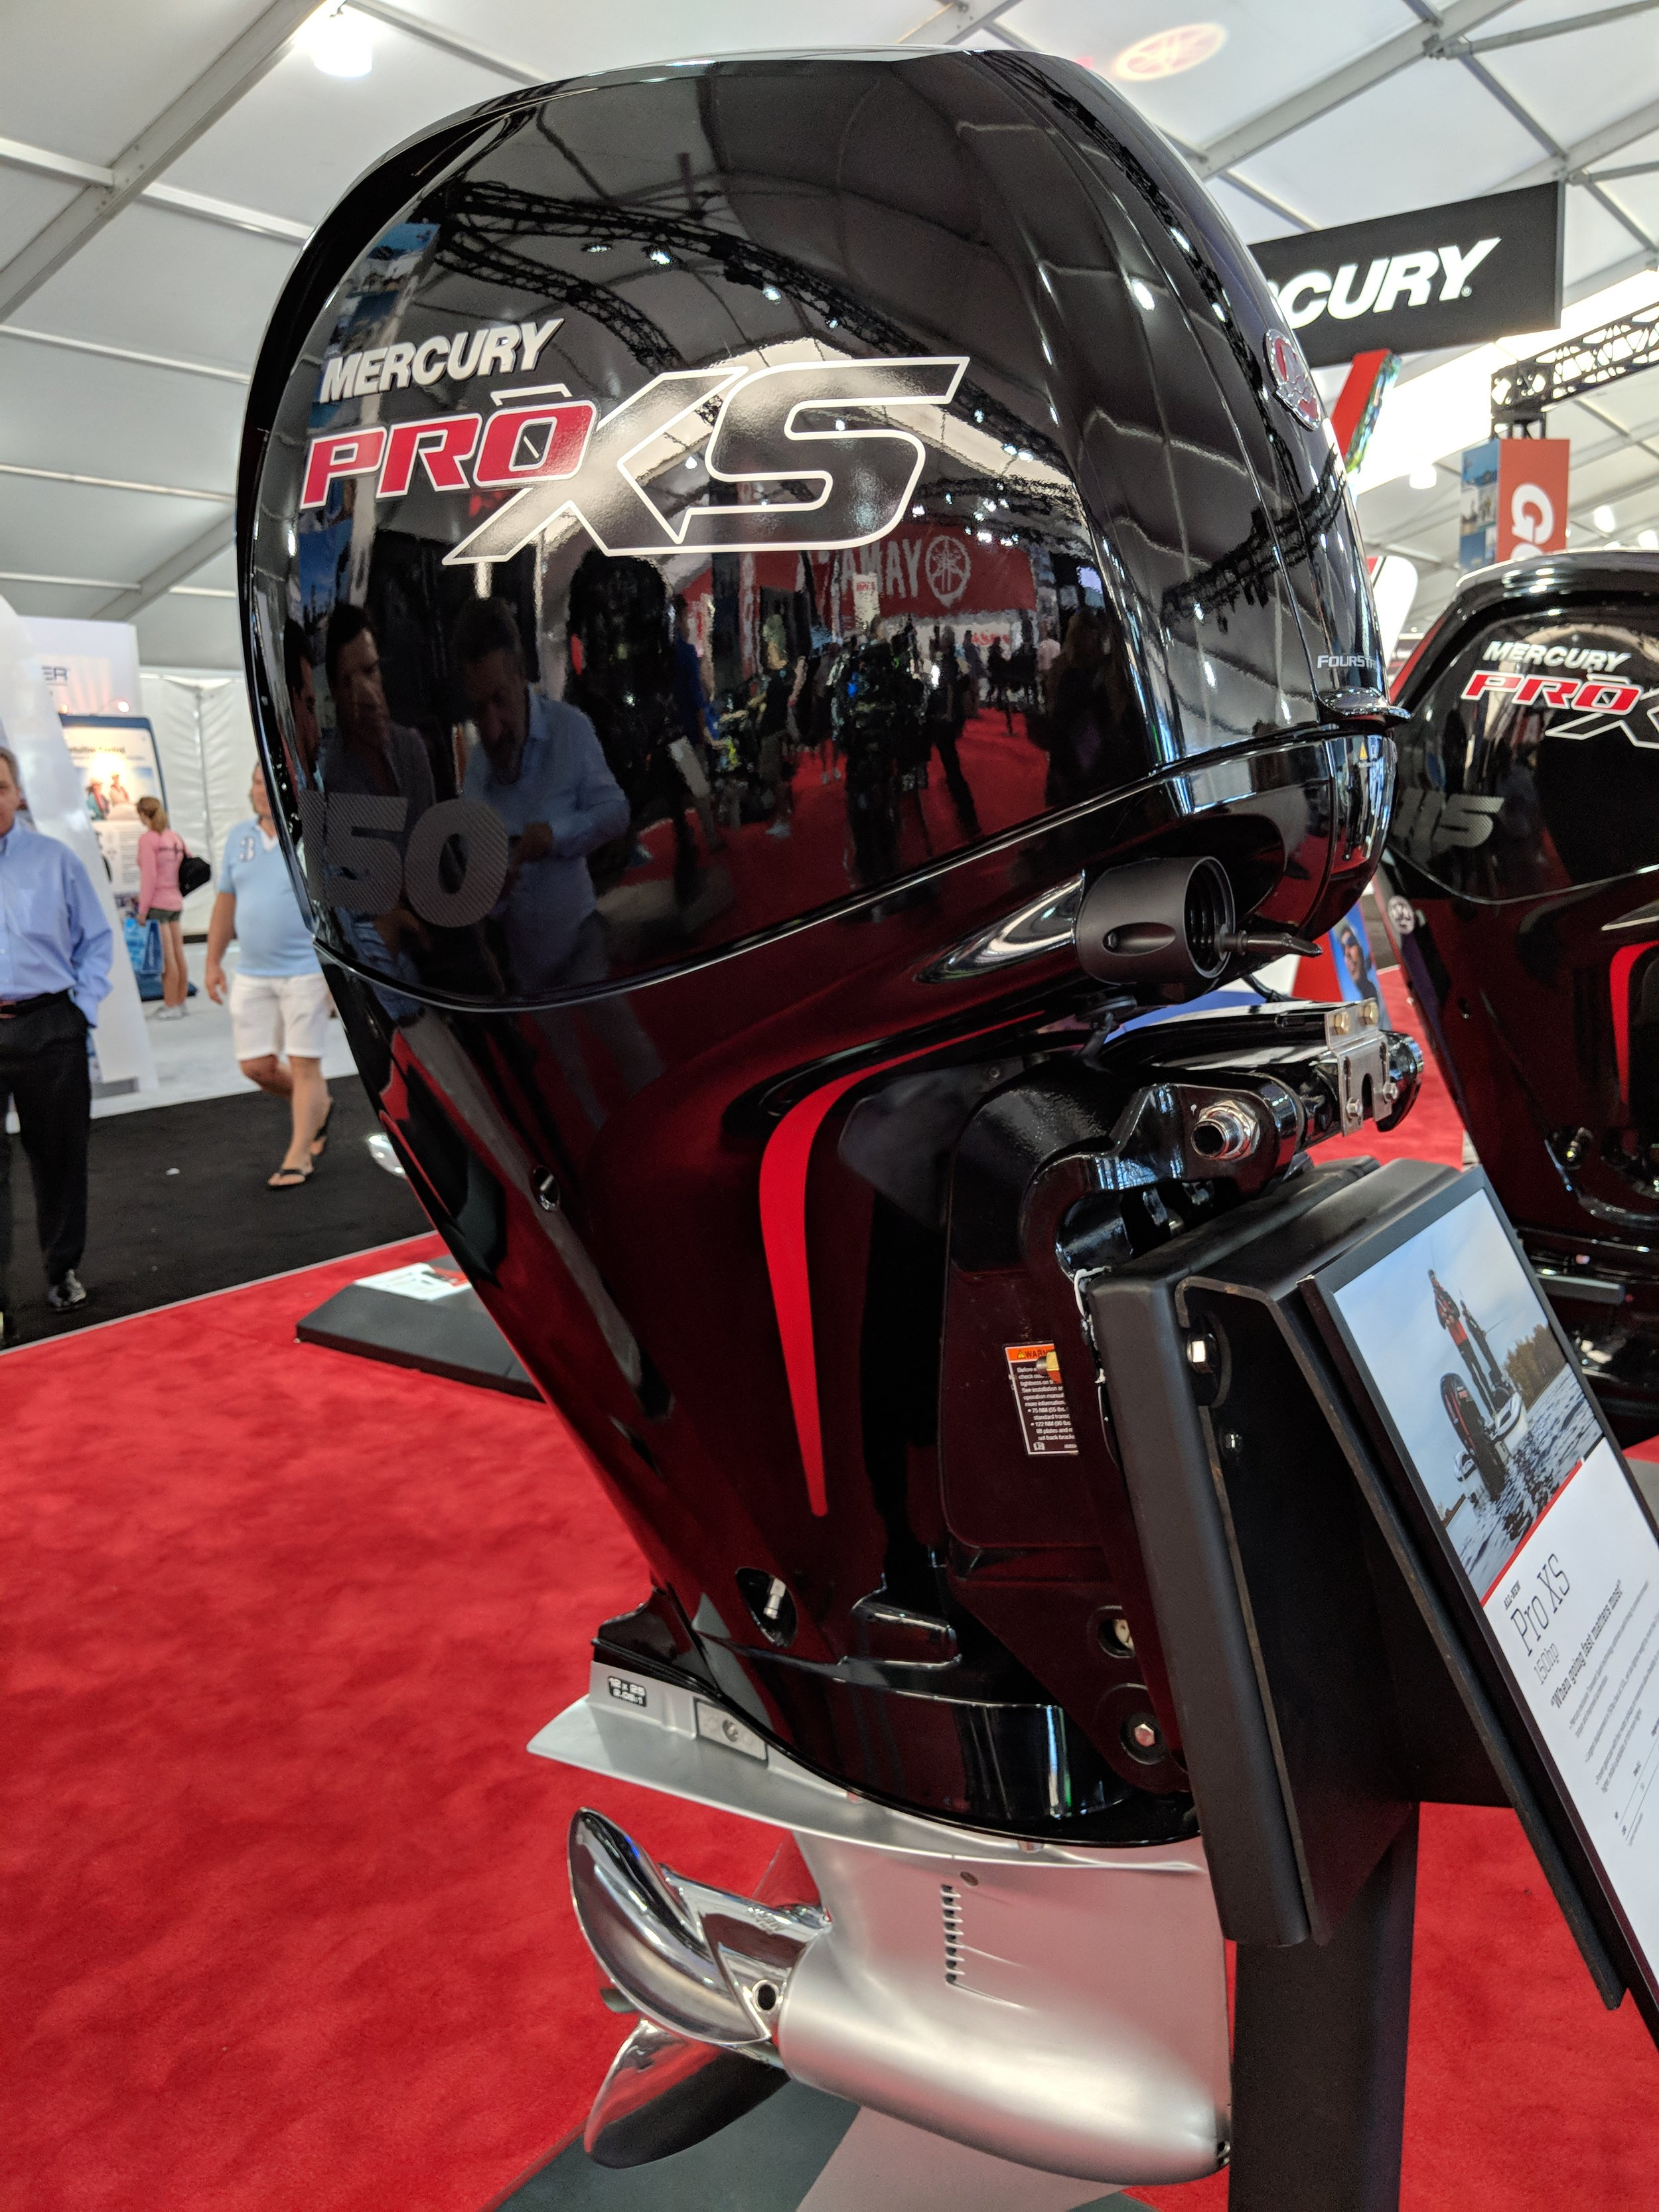 The 150 ProXS gearcase is better than the stock 150 in that it has low water pickups. The shape is probably okay for most boats that are running this engine. Would love to test it on a light hull.